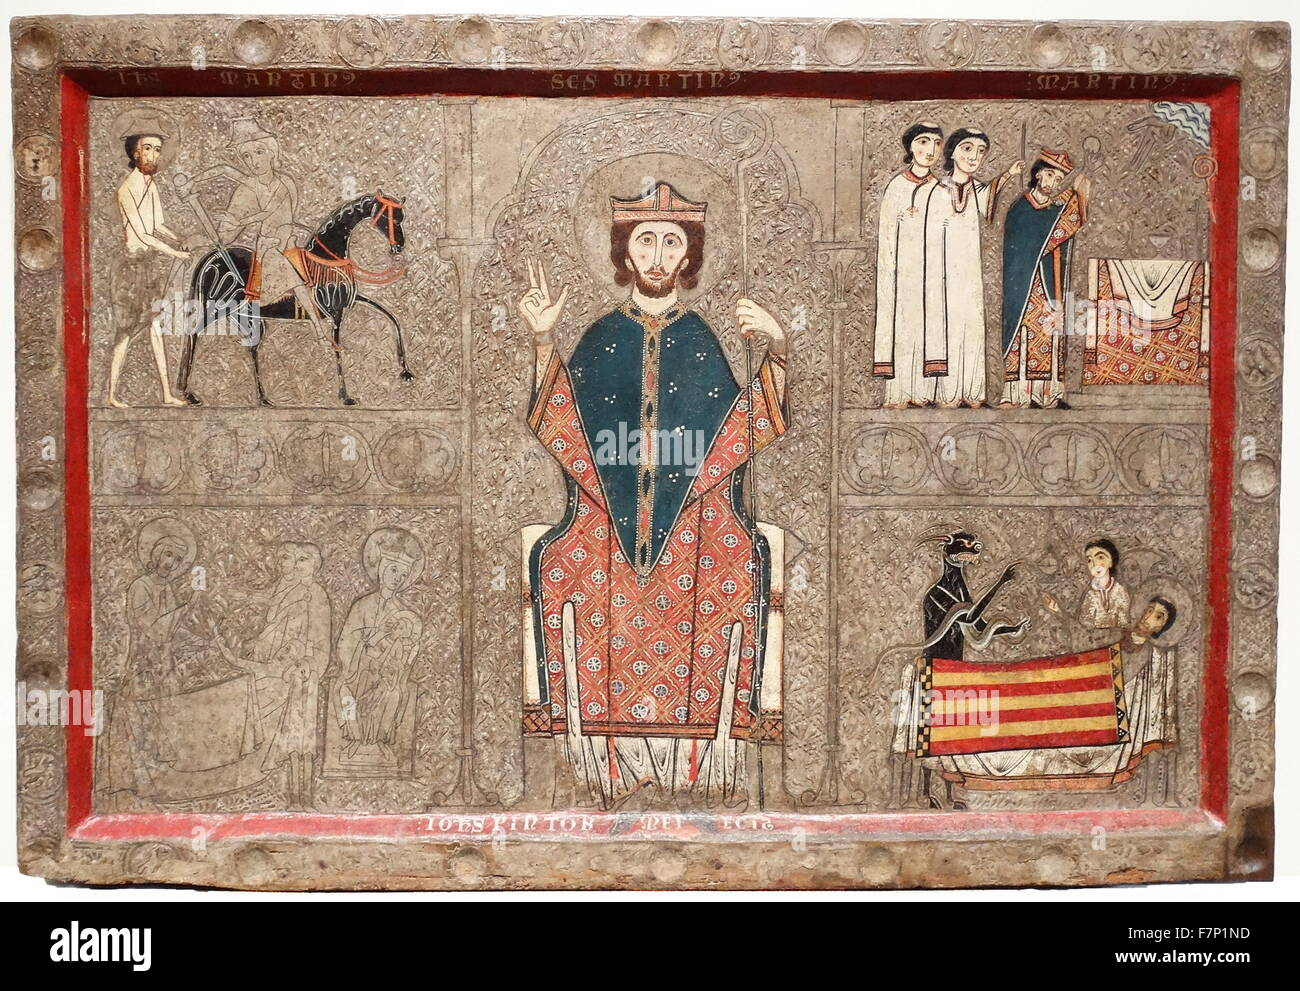 The Altar frontal Gia, from the church of San Martin de Gia or Xia. Created by the Workshop of Ribagorza. Dated - Stock Image